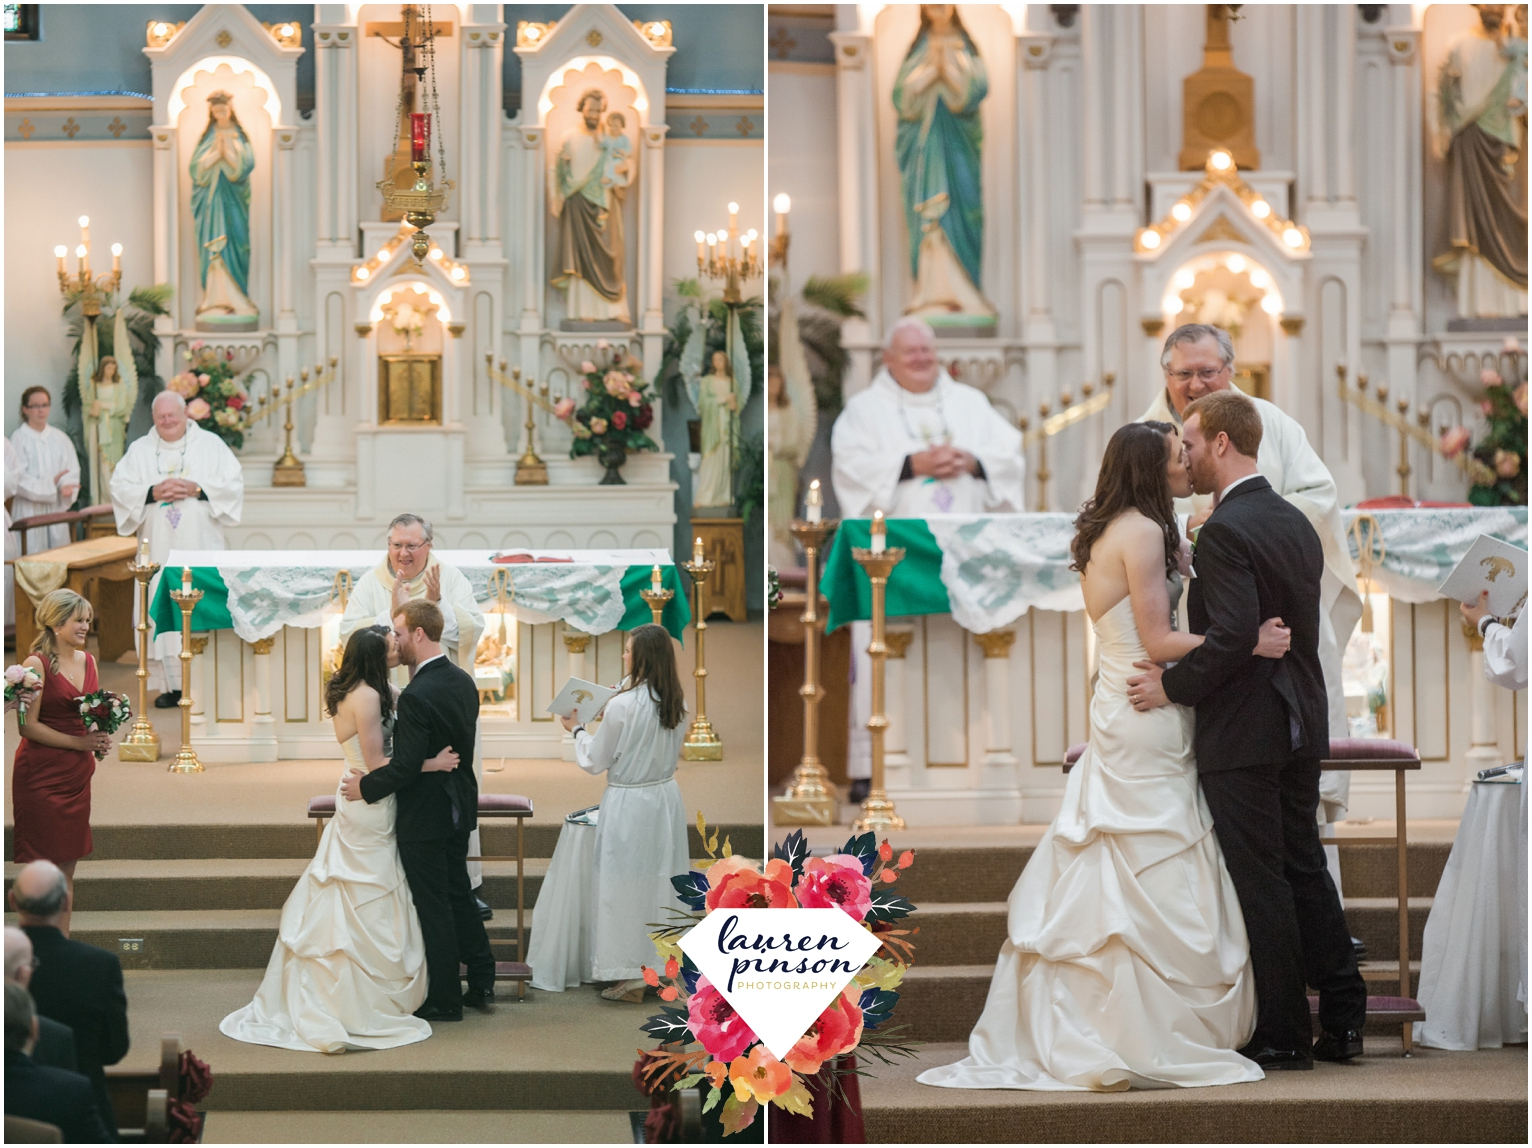 wichita-falls-wedding-photographer-OUR-Lady-queen-of-peace-catholic-wedding-the-forum-photography_0933.jpg